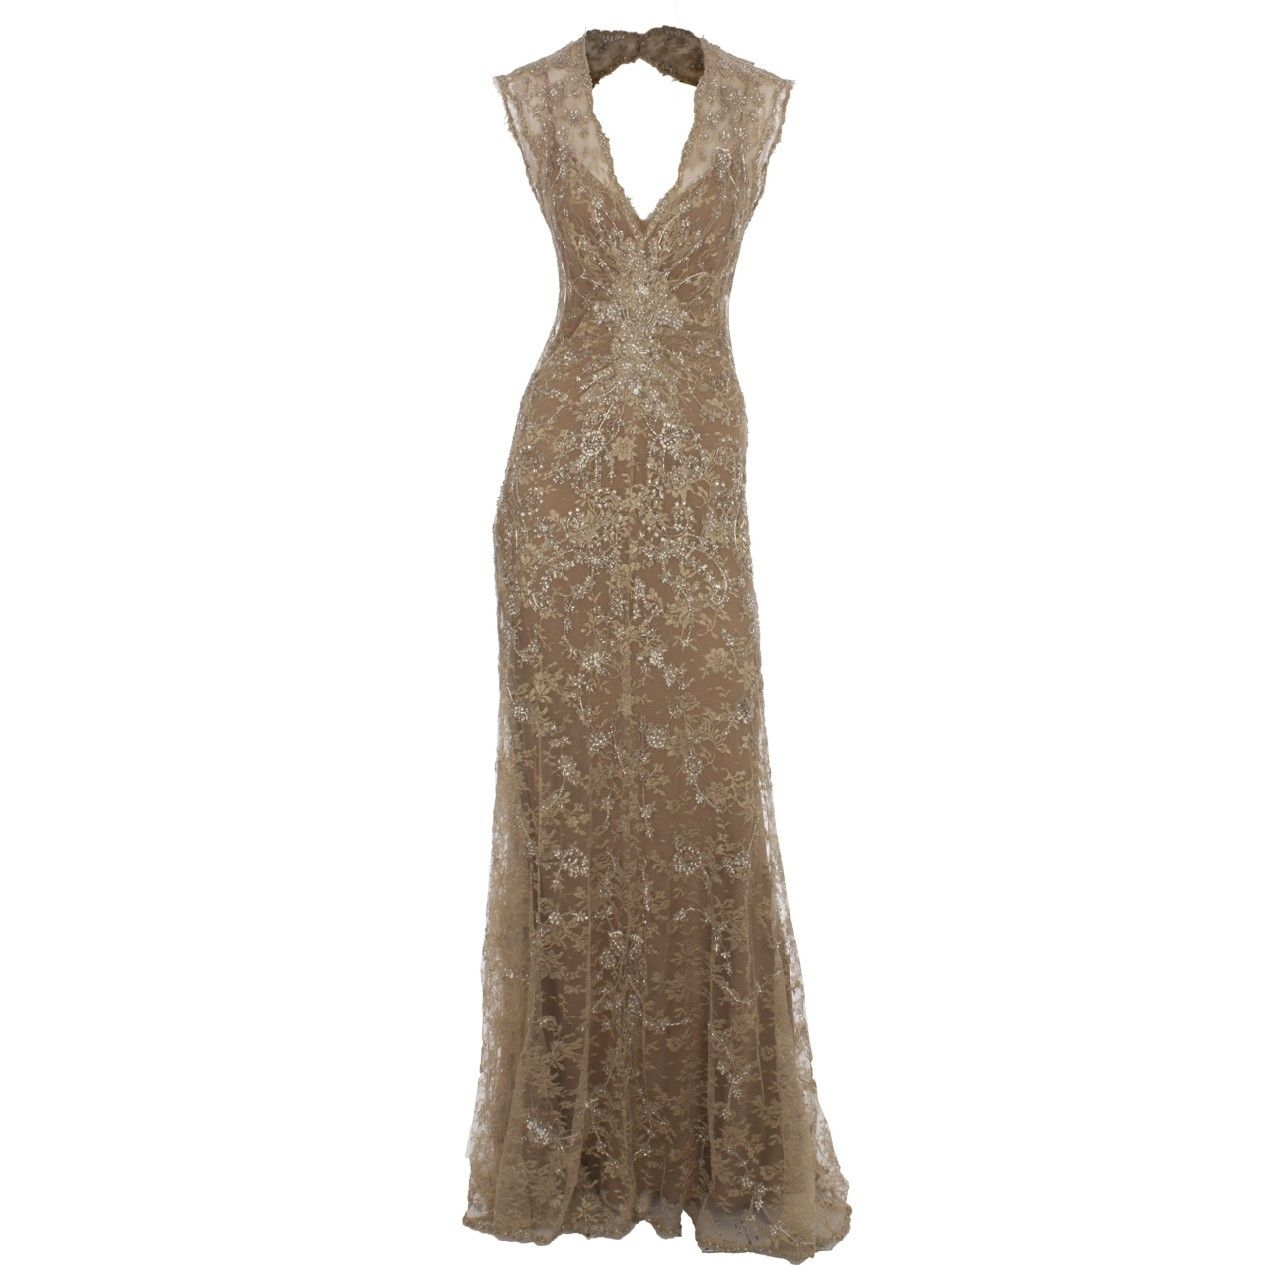 Hirshleifers monique lhuillier embroidered lace gown nude